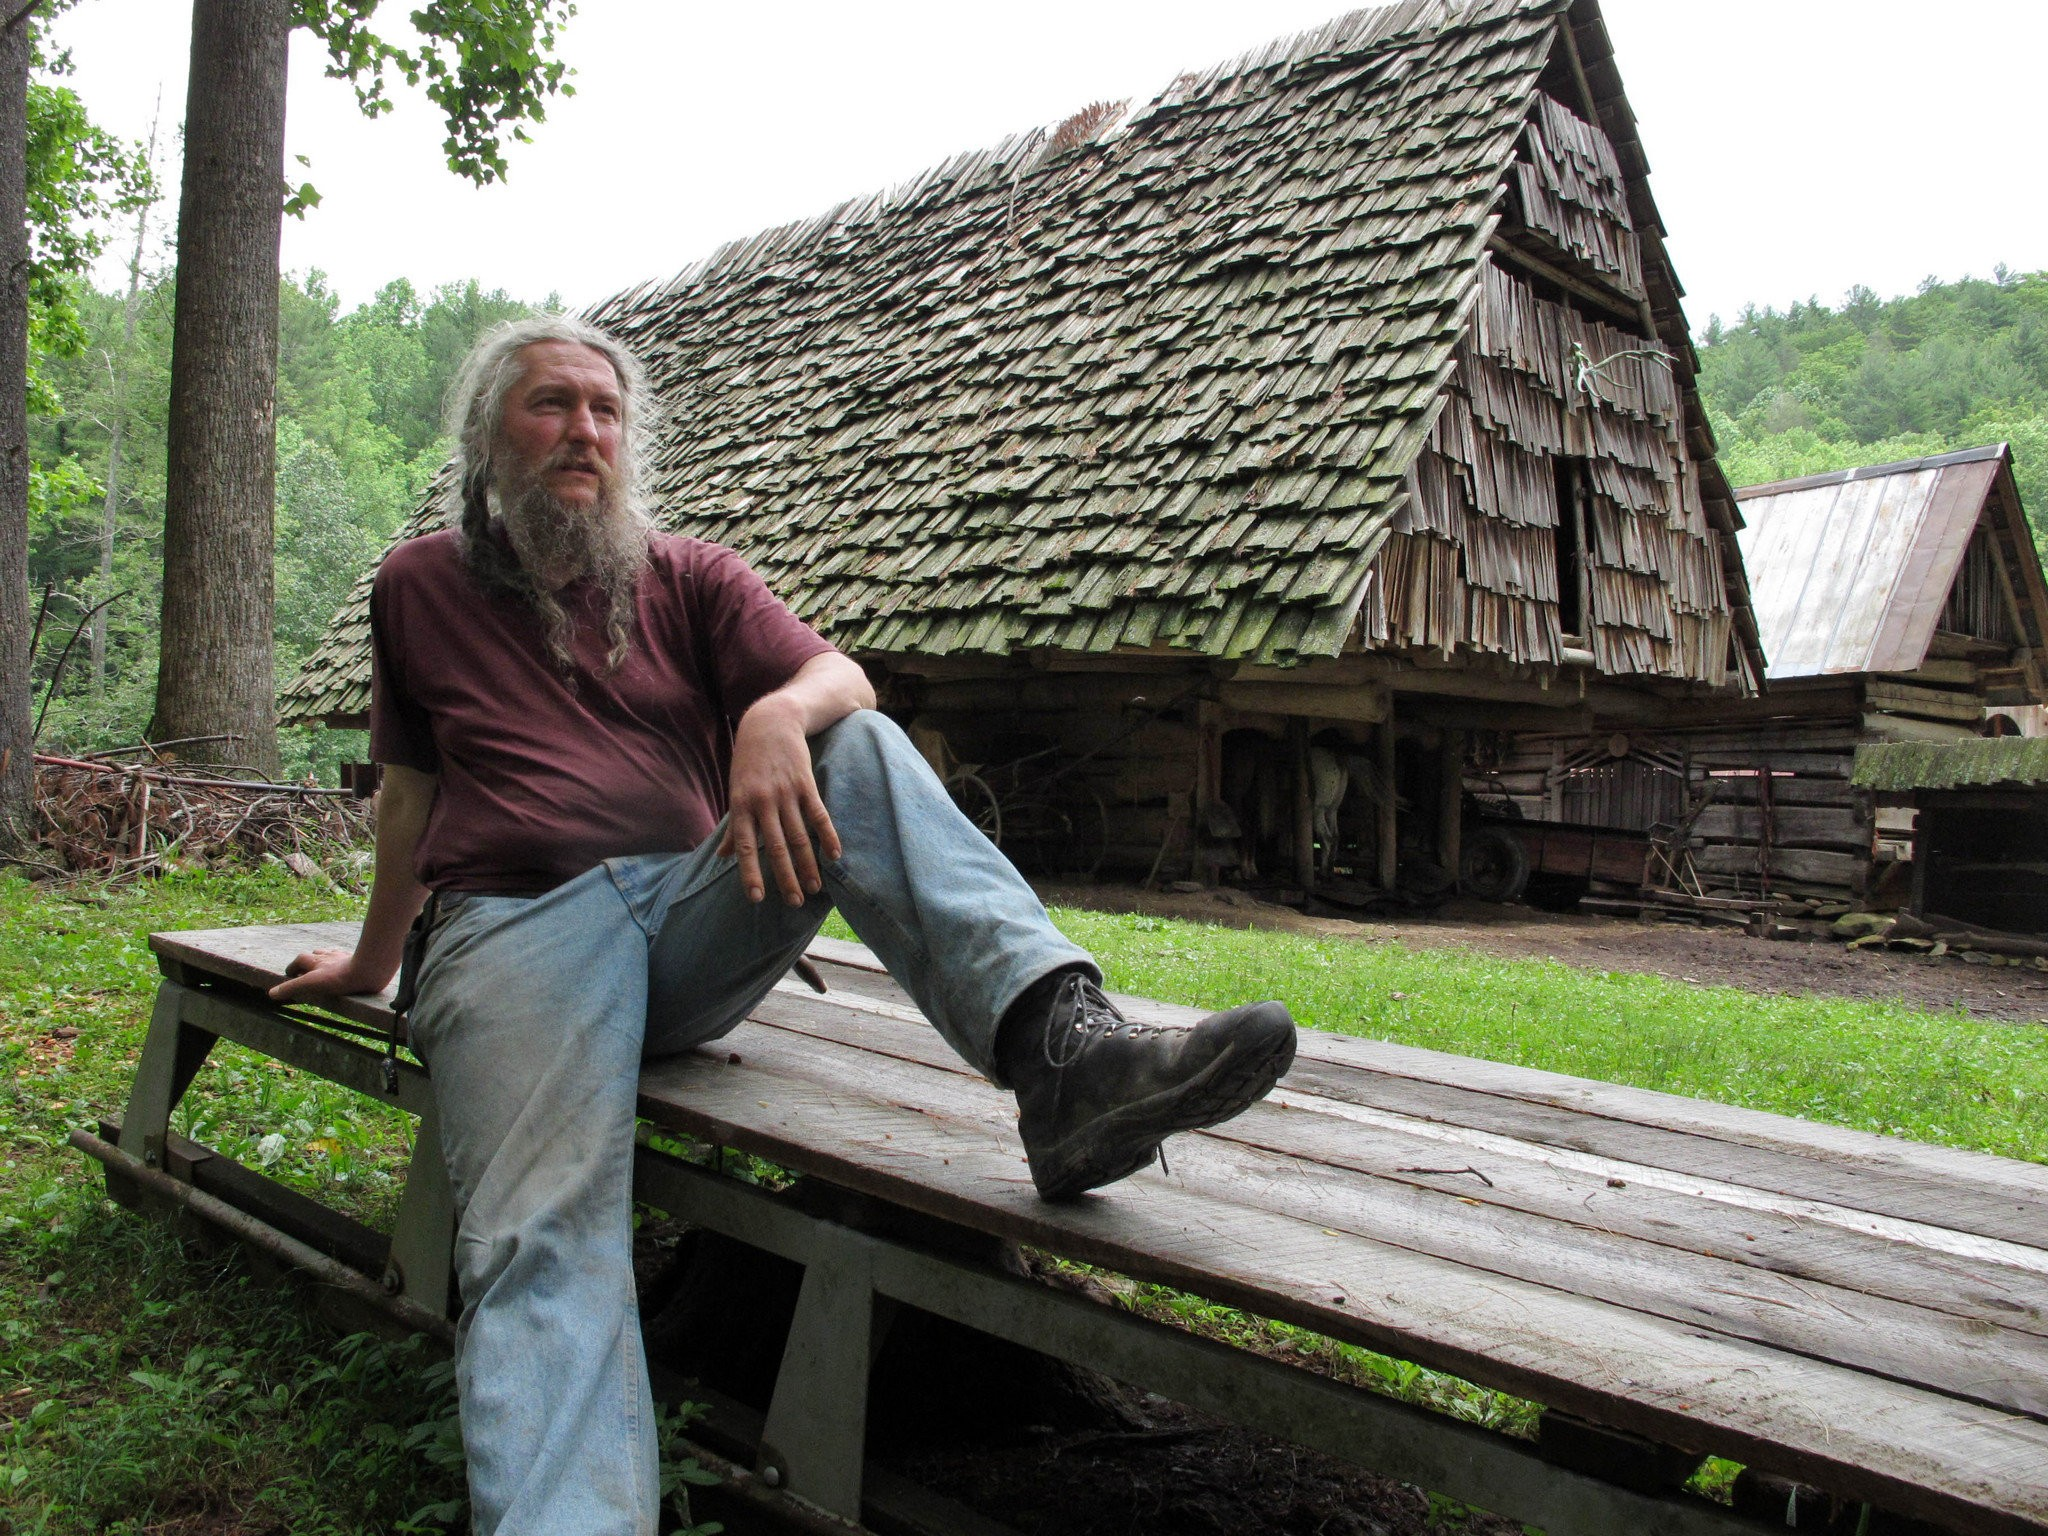 Eustace Conway at  environmental education centre, Turtle Island Preserve in Boone, North Carolina. Eustace Conway's story regarding the building violation case covered by the Fox News Special, War on the Little Guy